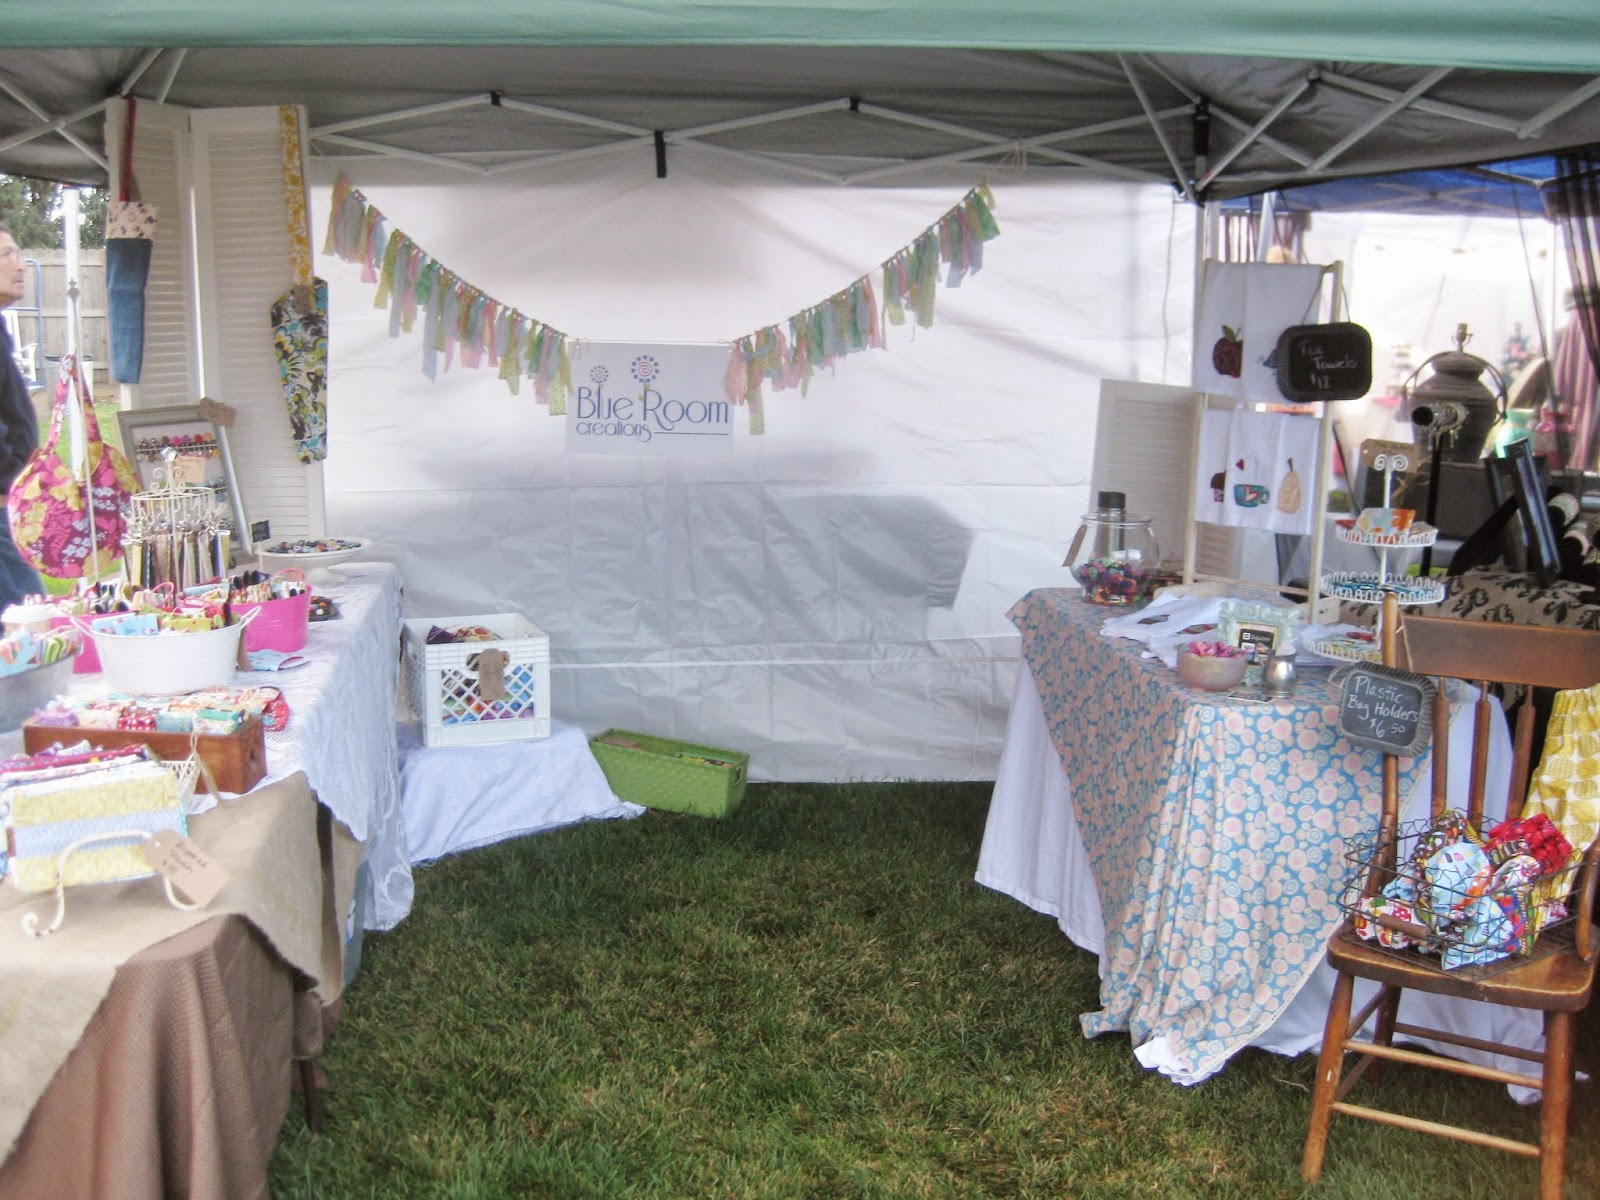 Blue room creations craft show display ideas 2 for Used craft fair tents